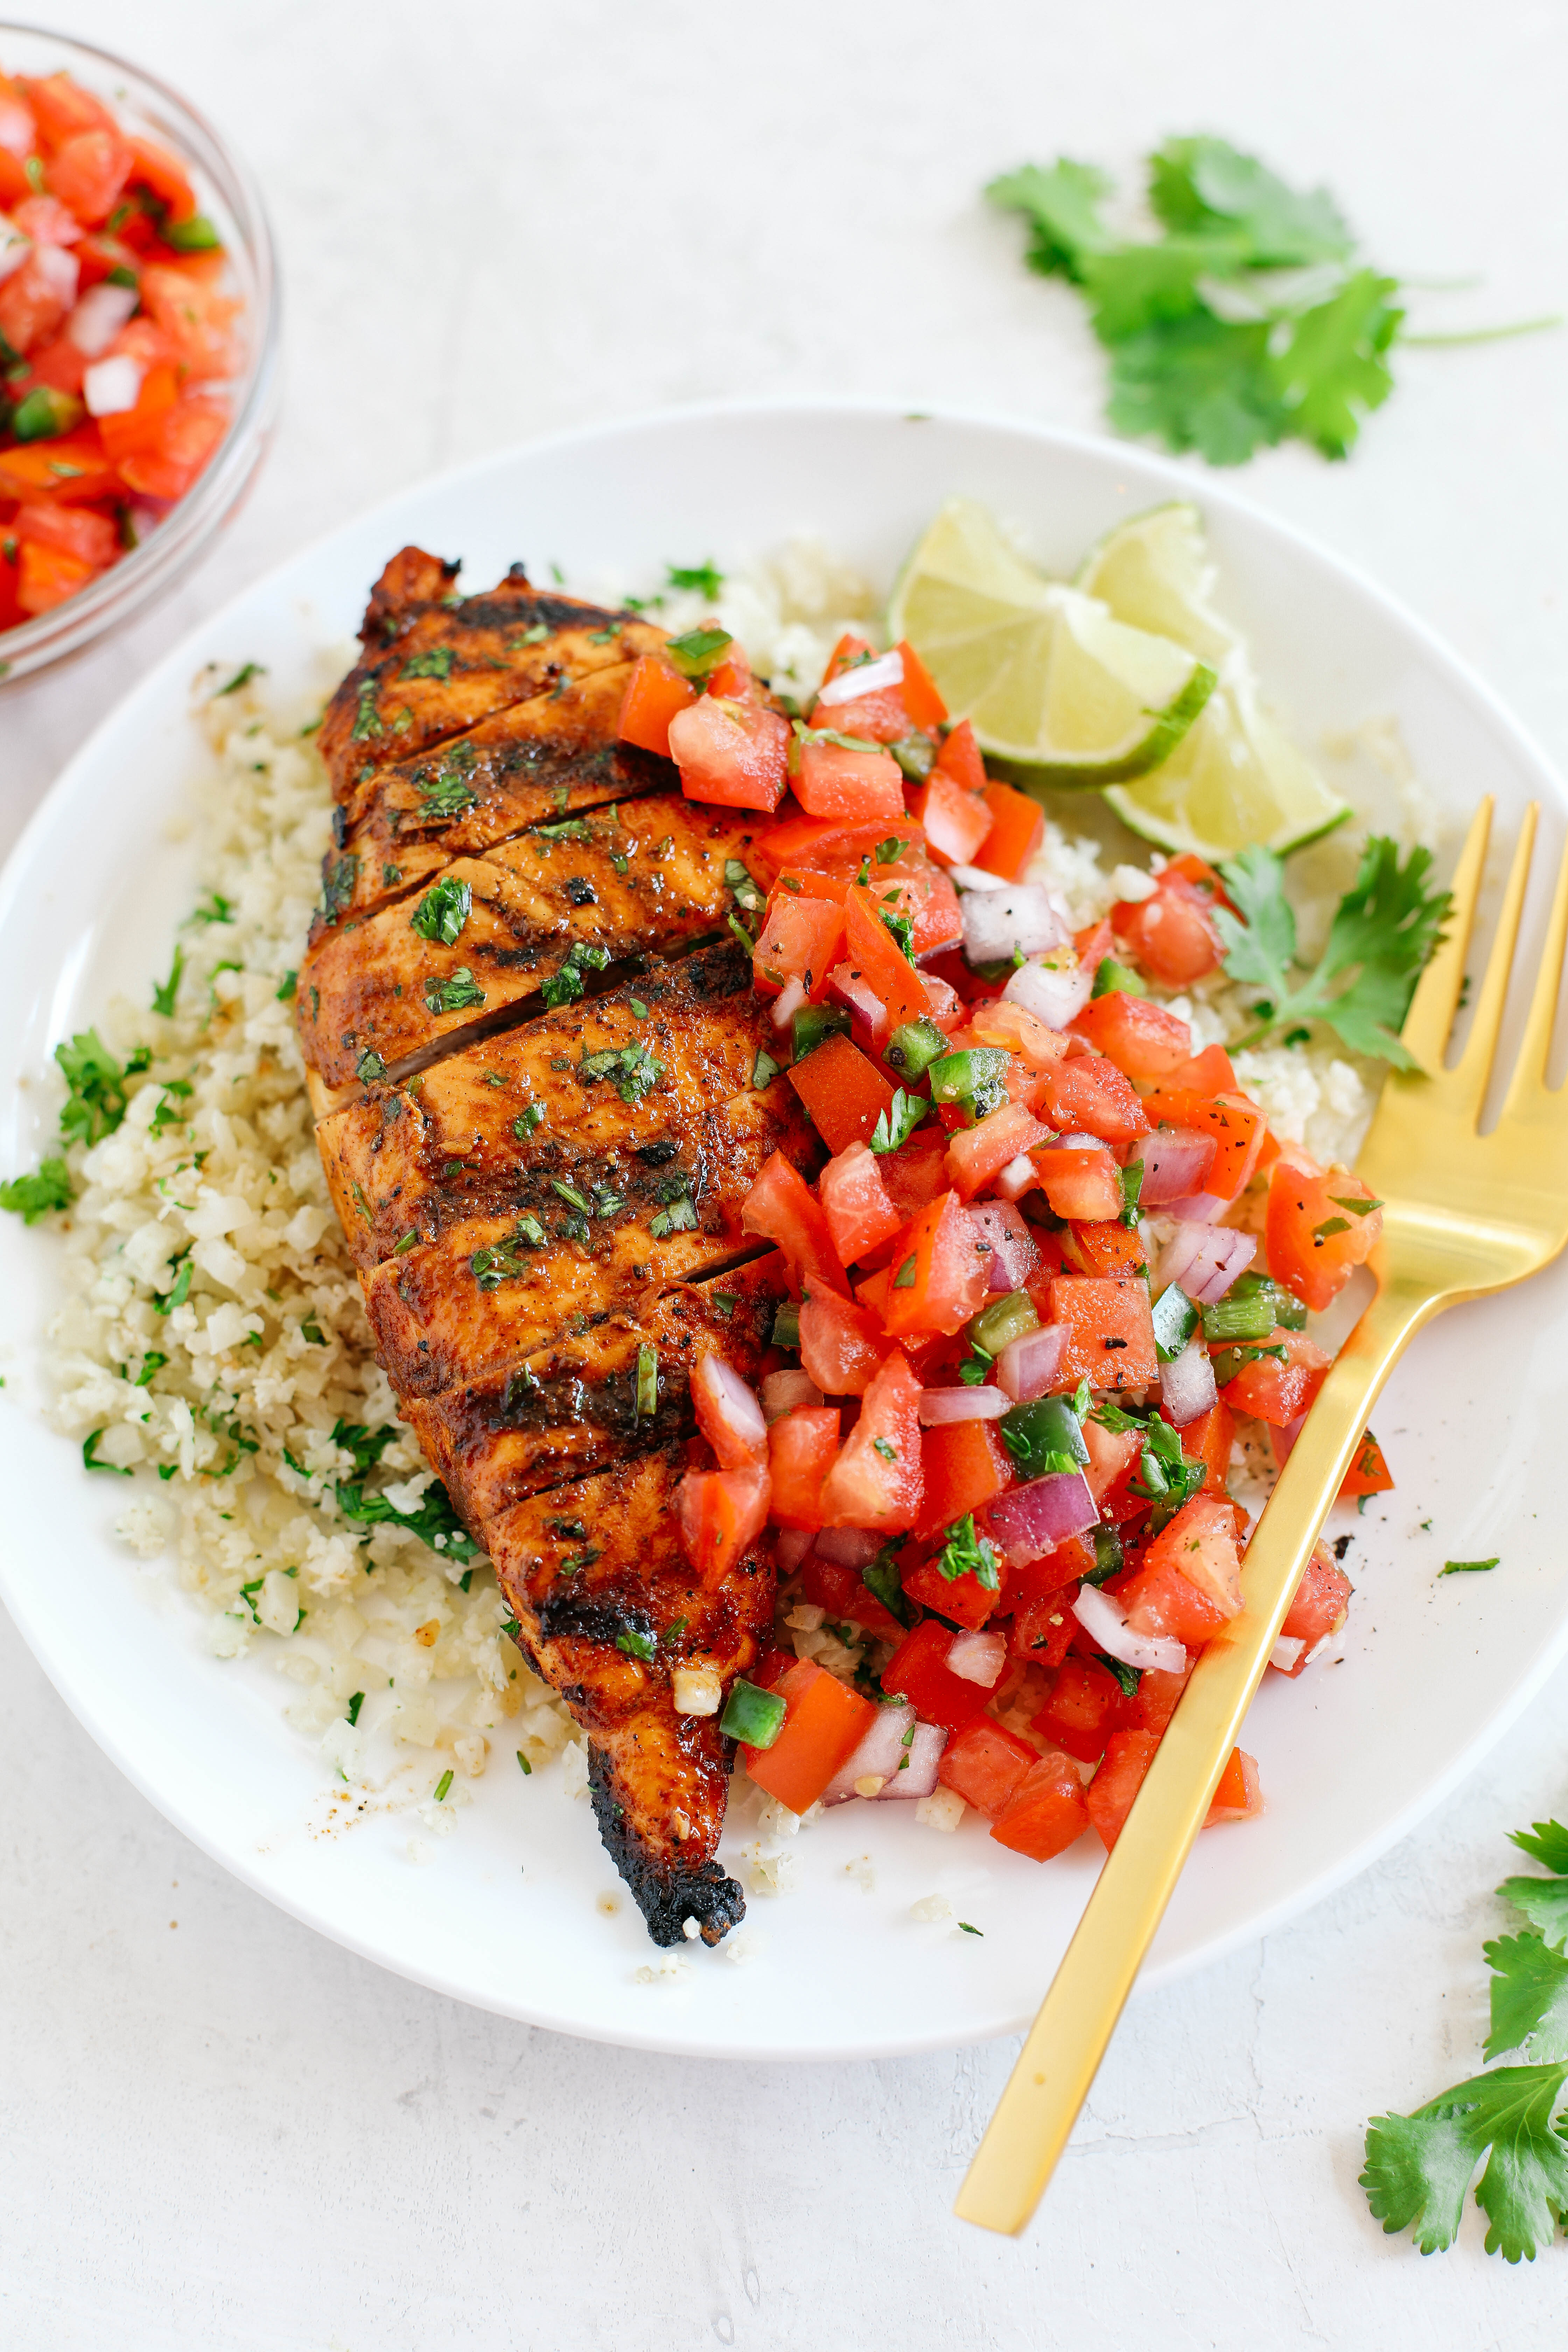 This Chili Lime Grilled Chicken is juicy, flavorful and marinated in a delicious combination of spices making this the perfect summer recipe!  Pair it with fresh salsa and cauliflower rice for a complete meal!